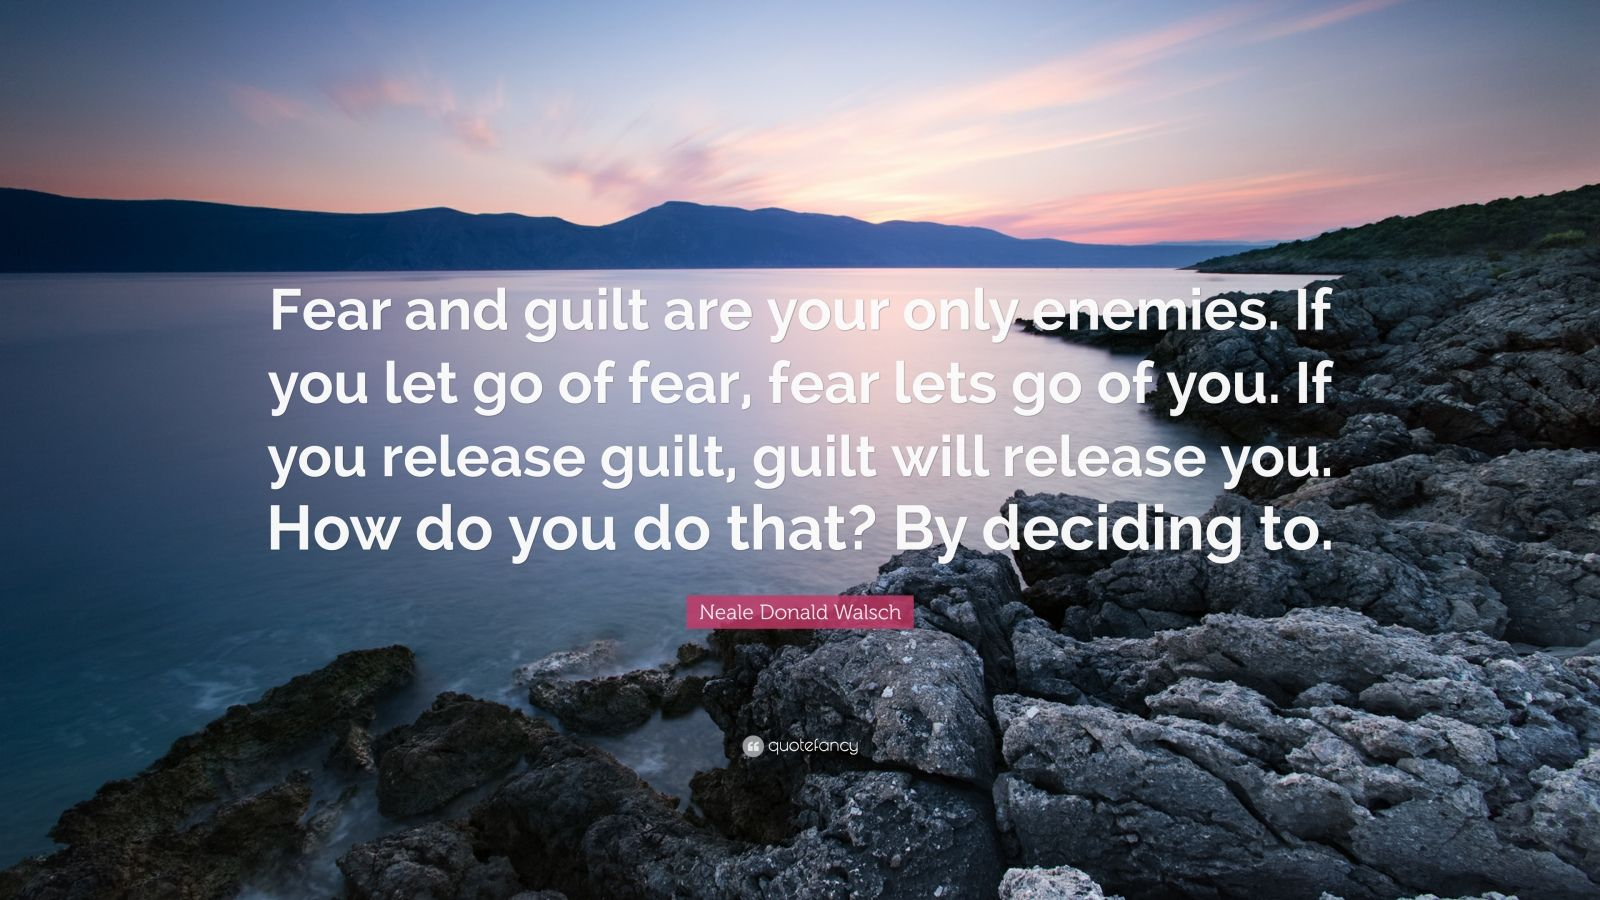 "Neale Donald Walsch Quote: ""Fear and guilt are your only enemies. If you let go of fear, fear lets go of you. If you release guilt, guilt will release you. How do you do that? By deciding to."""